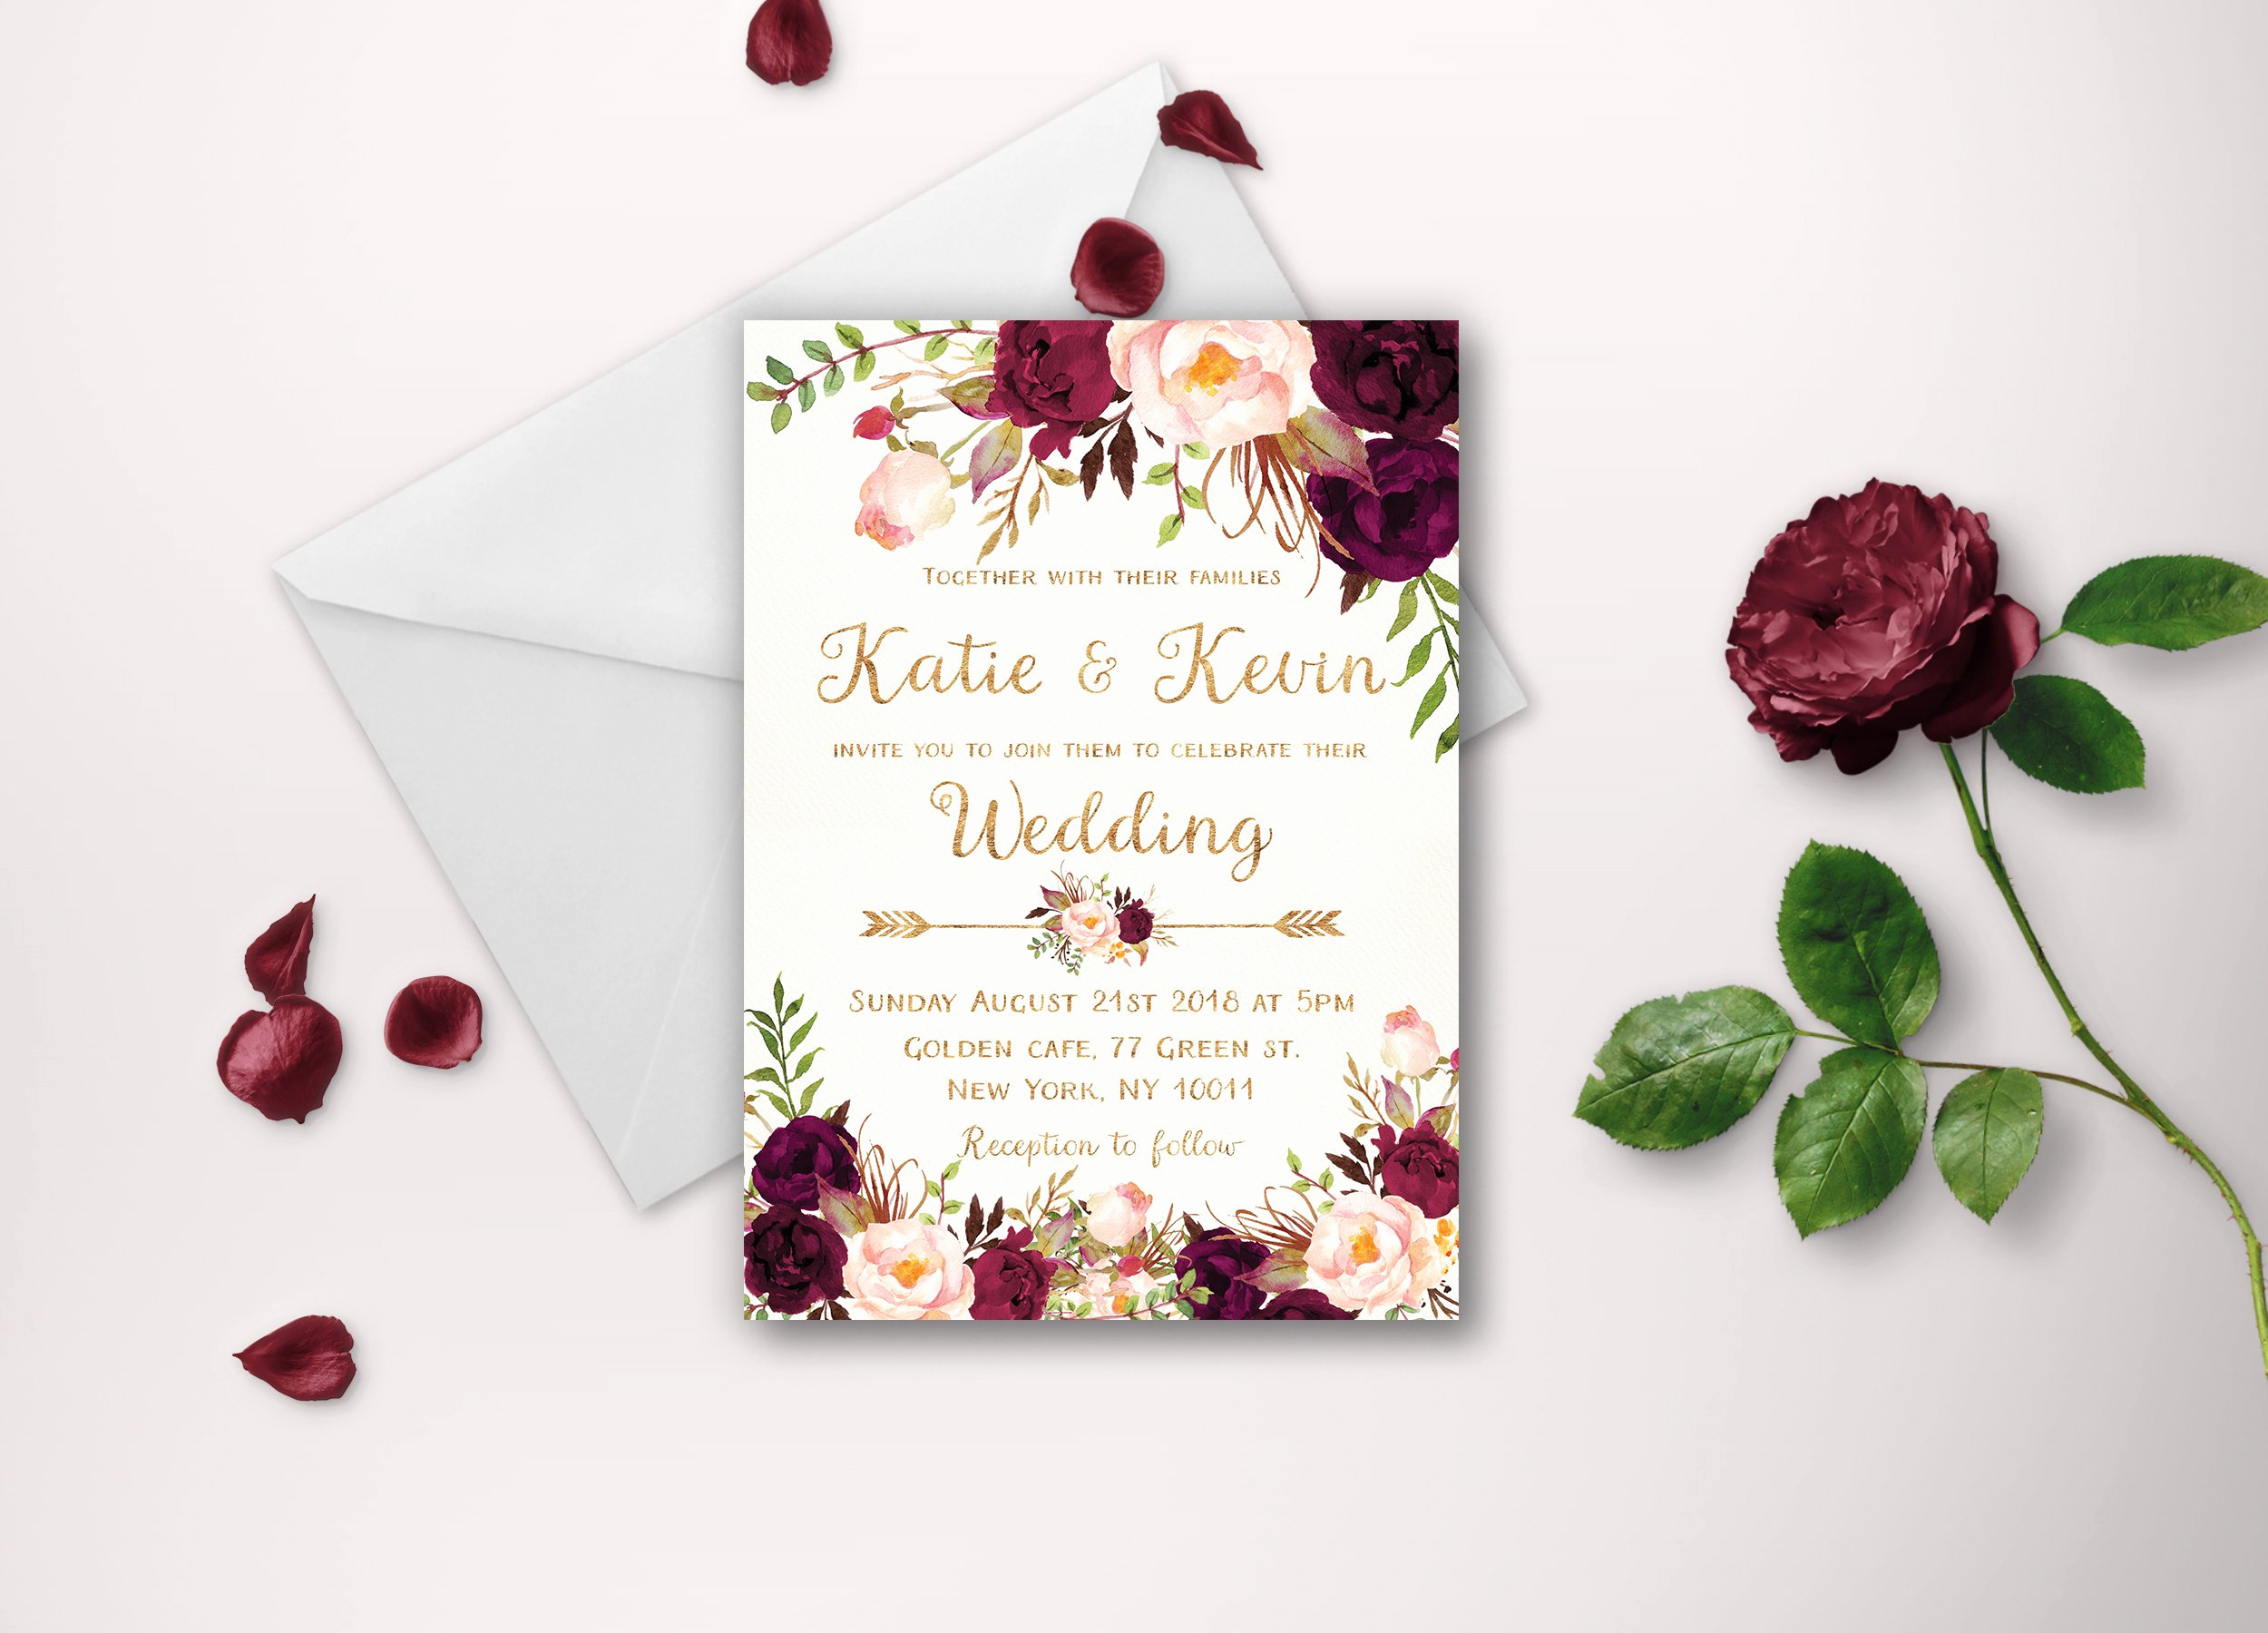 Printable Wedding Invitation Templates Inspirational Floral Wedding Invitation Template Wedding Invitation